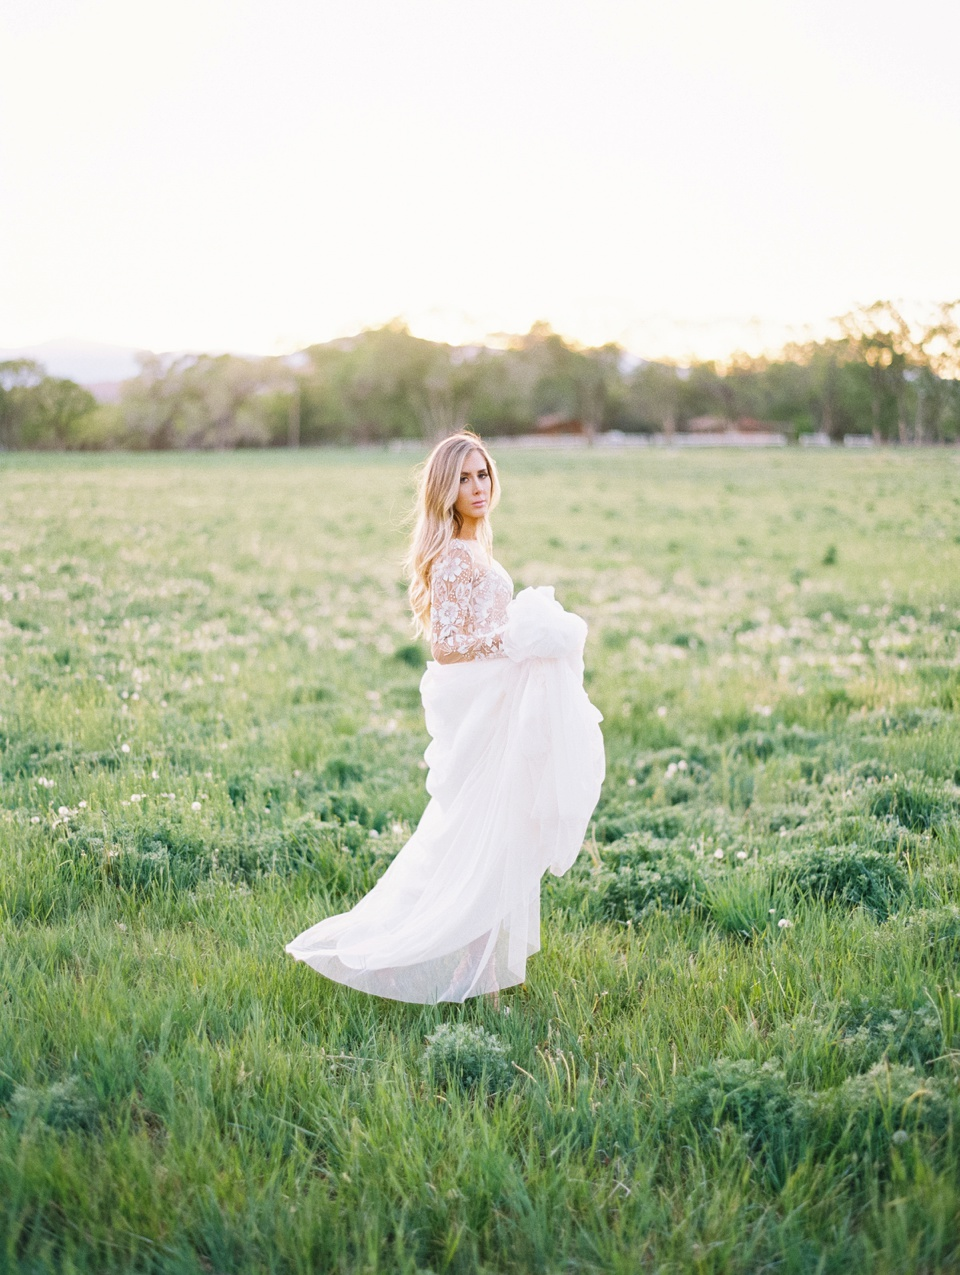 Becca Lea Photography, Santa Fe Weddings